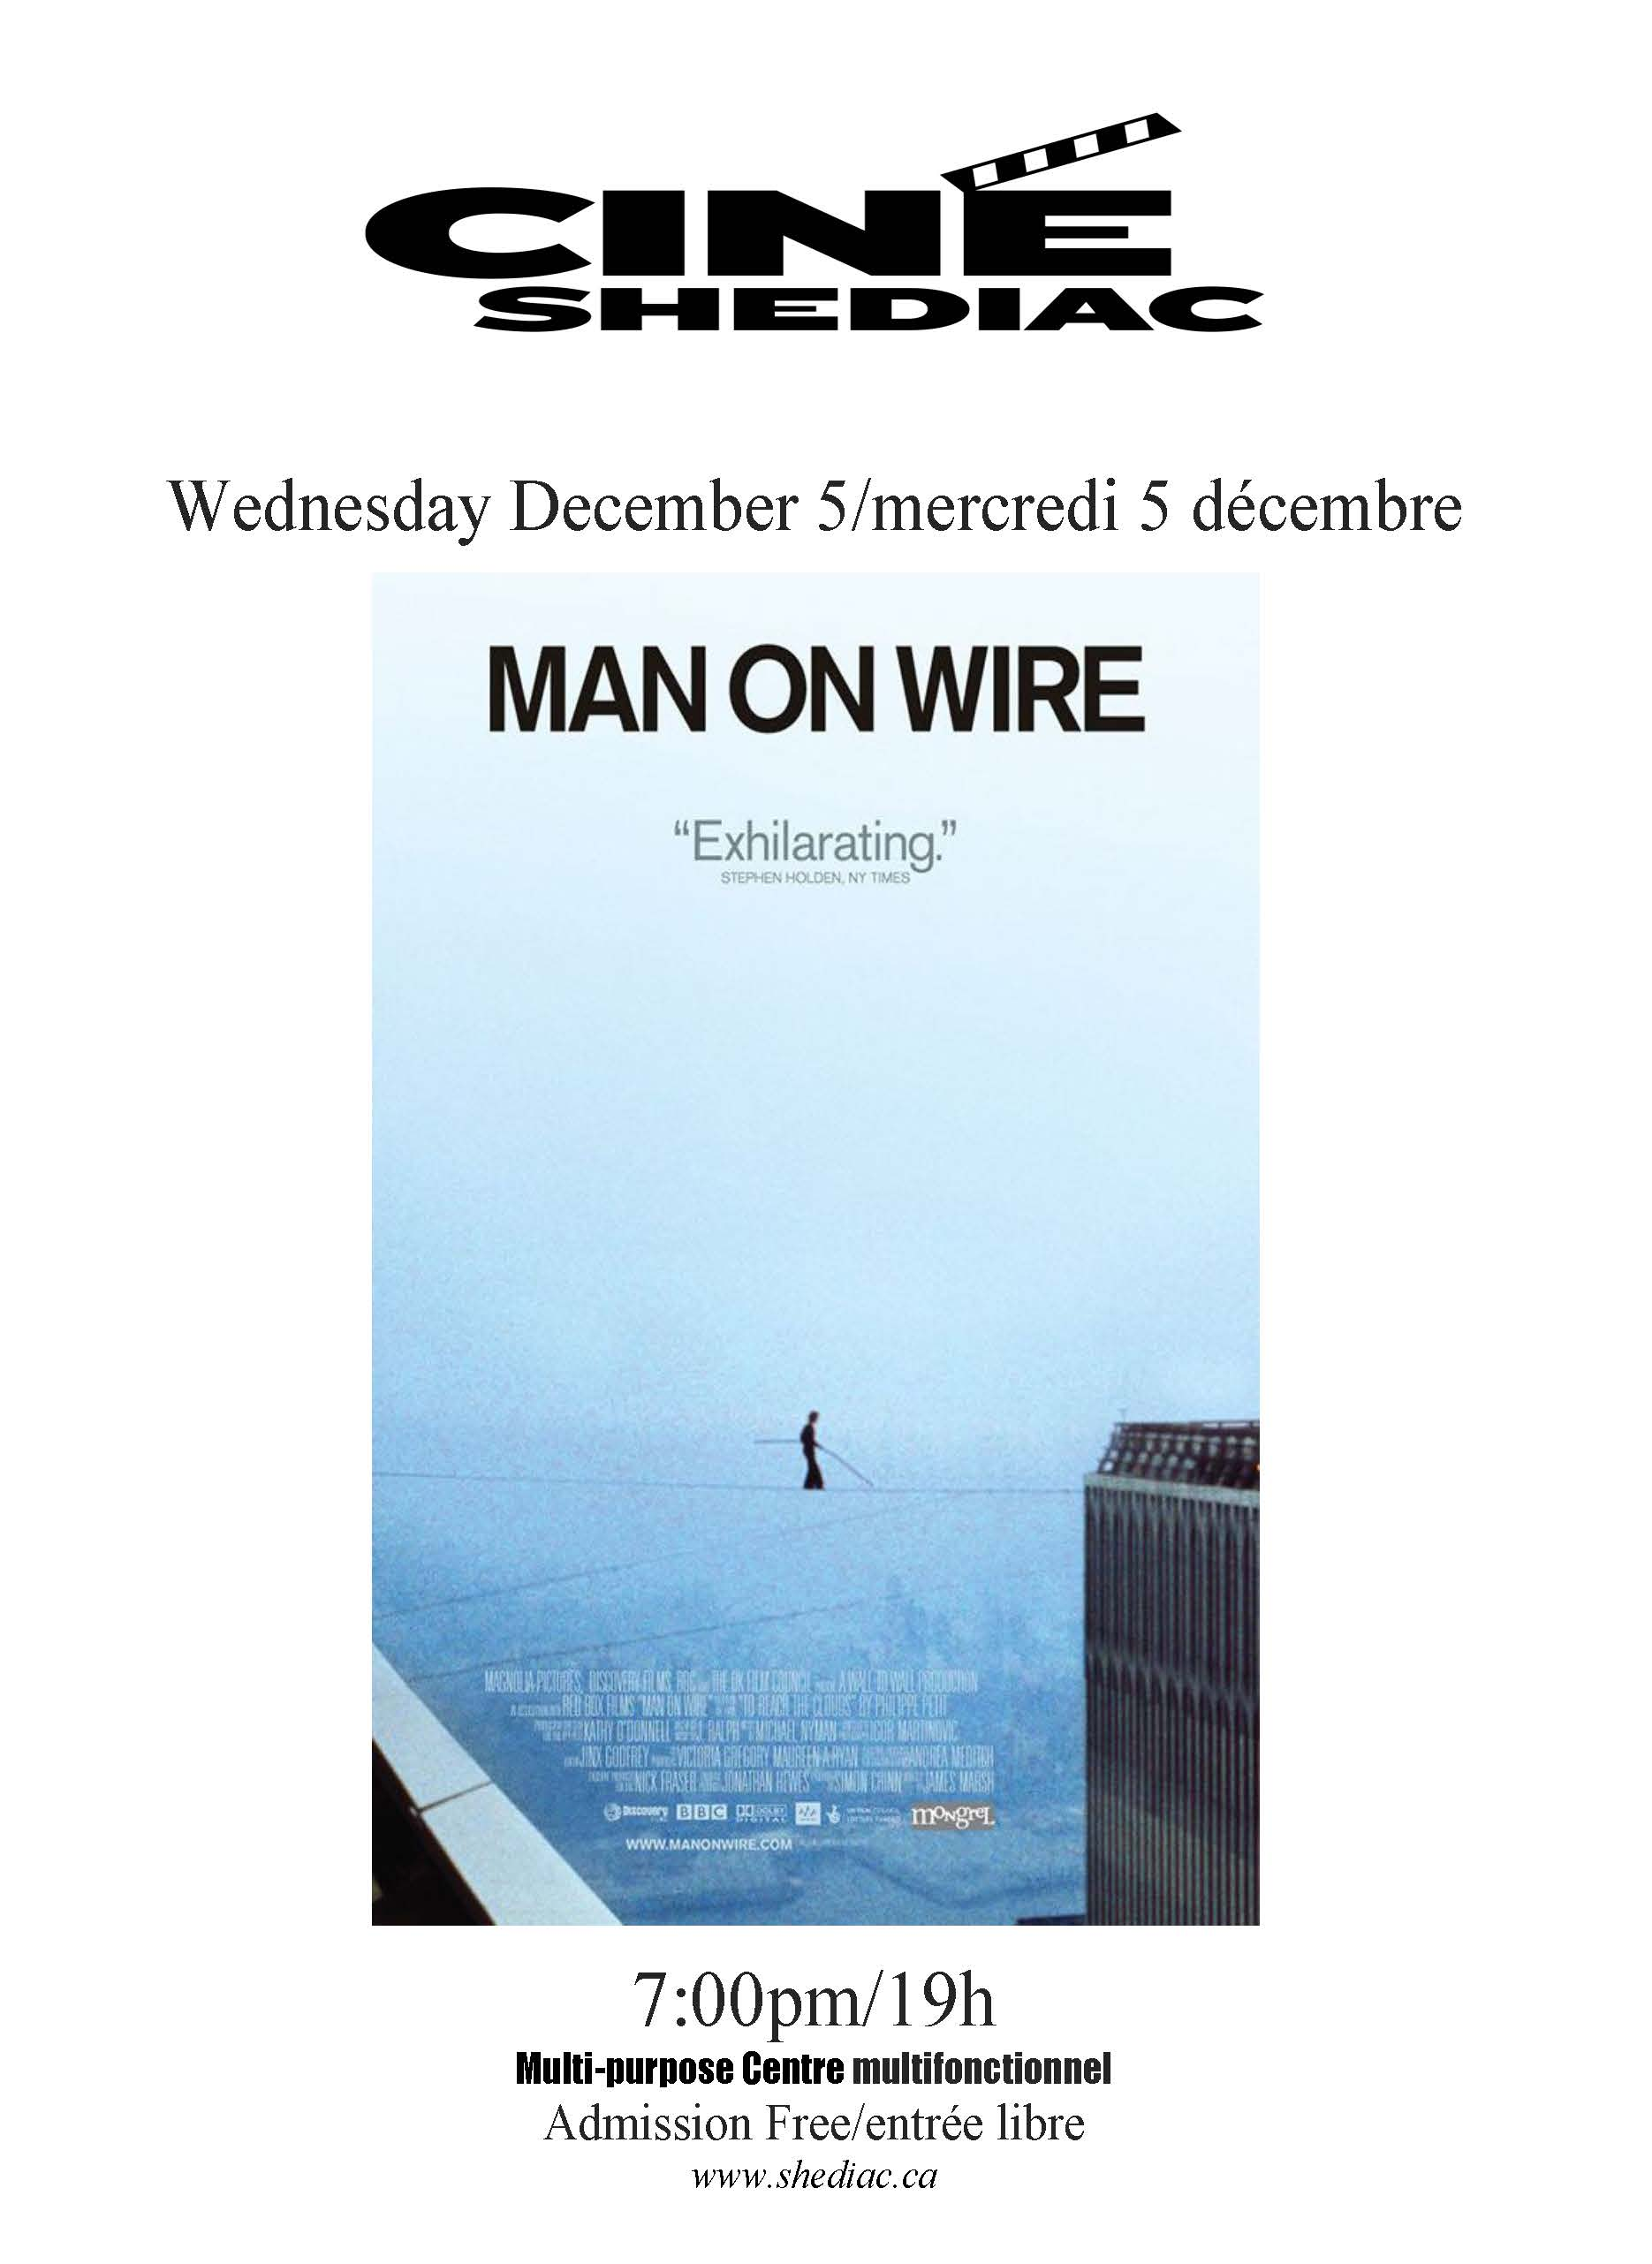 Man on wire 5 decembre